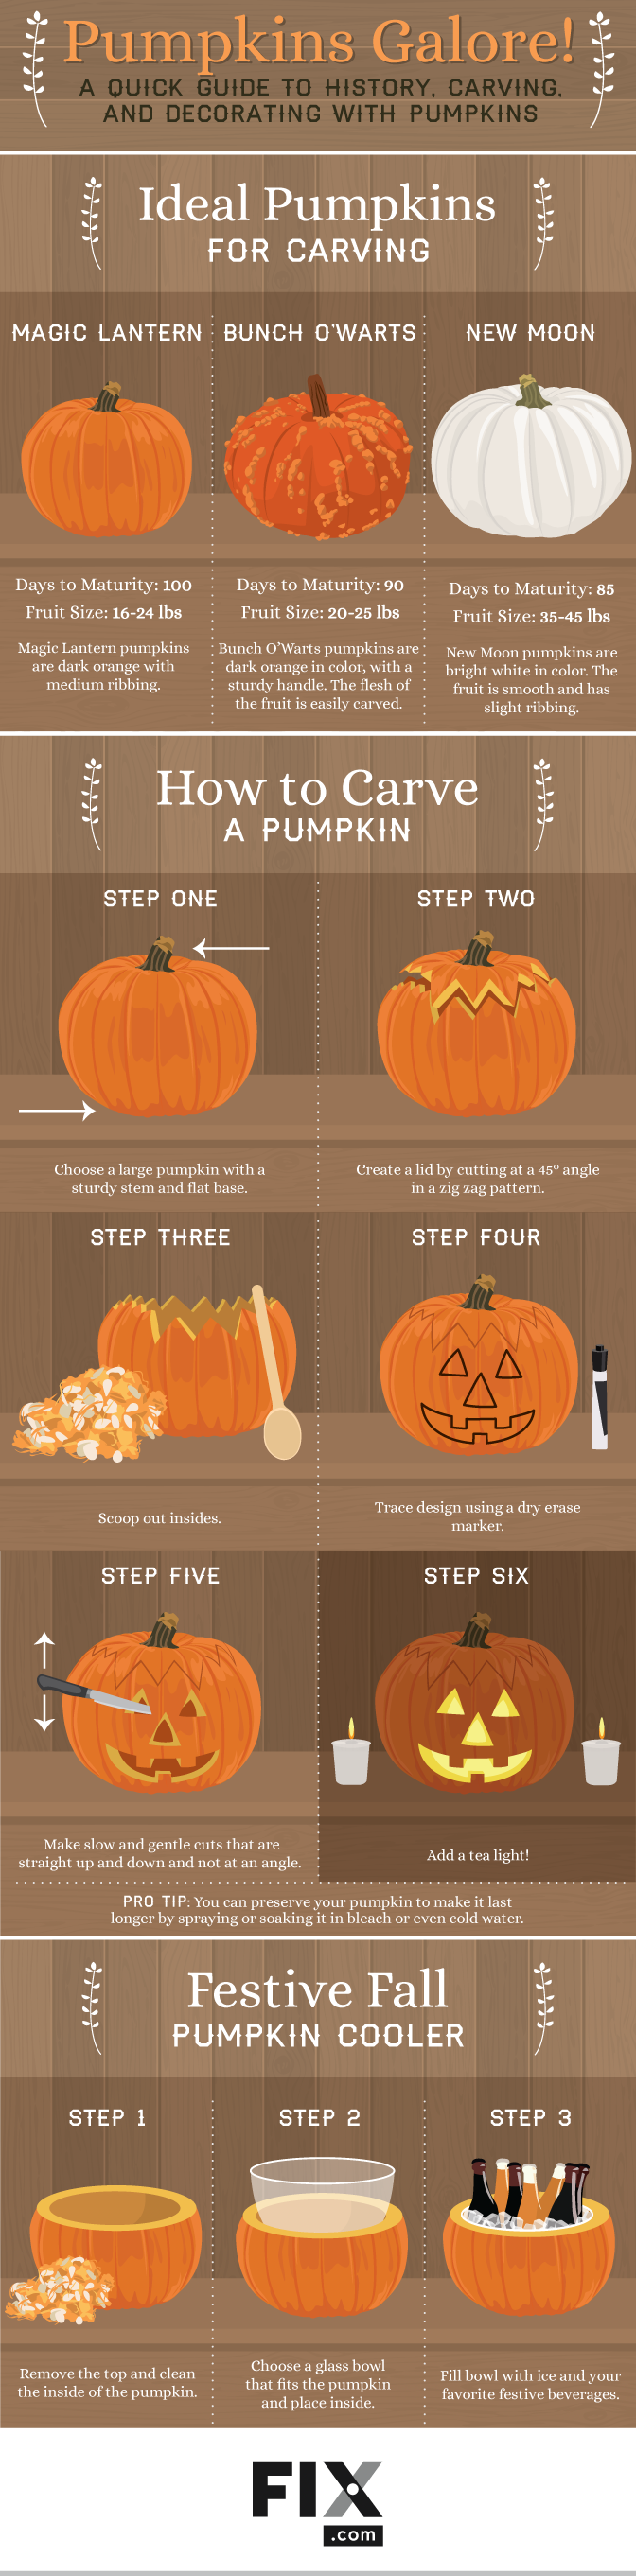 Pumpkins Galore A Quick Guide To History Carving And Decorating With Pumpkins